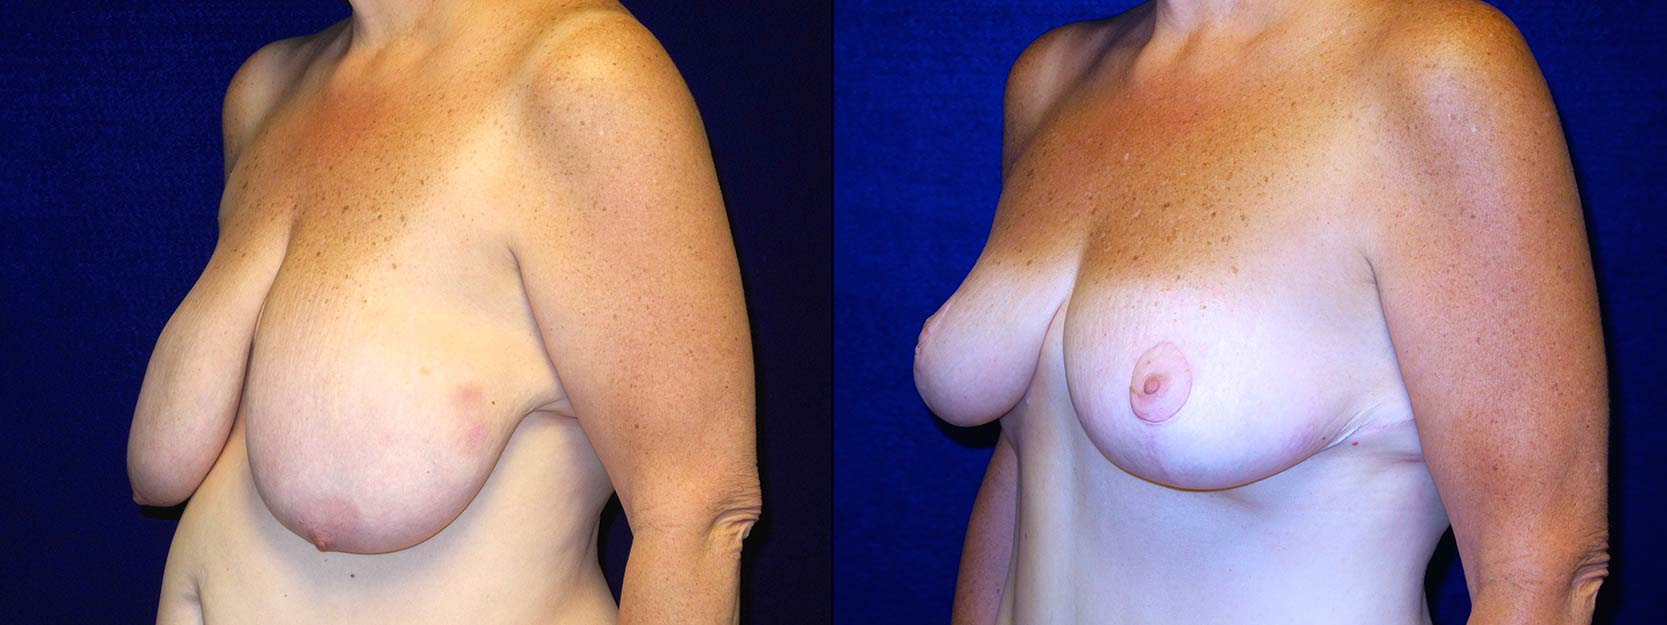 Left 3/4 View - Breast Reduction After Weight Loss